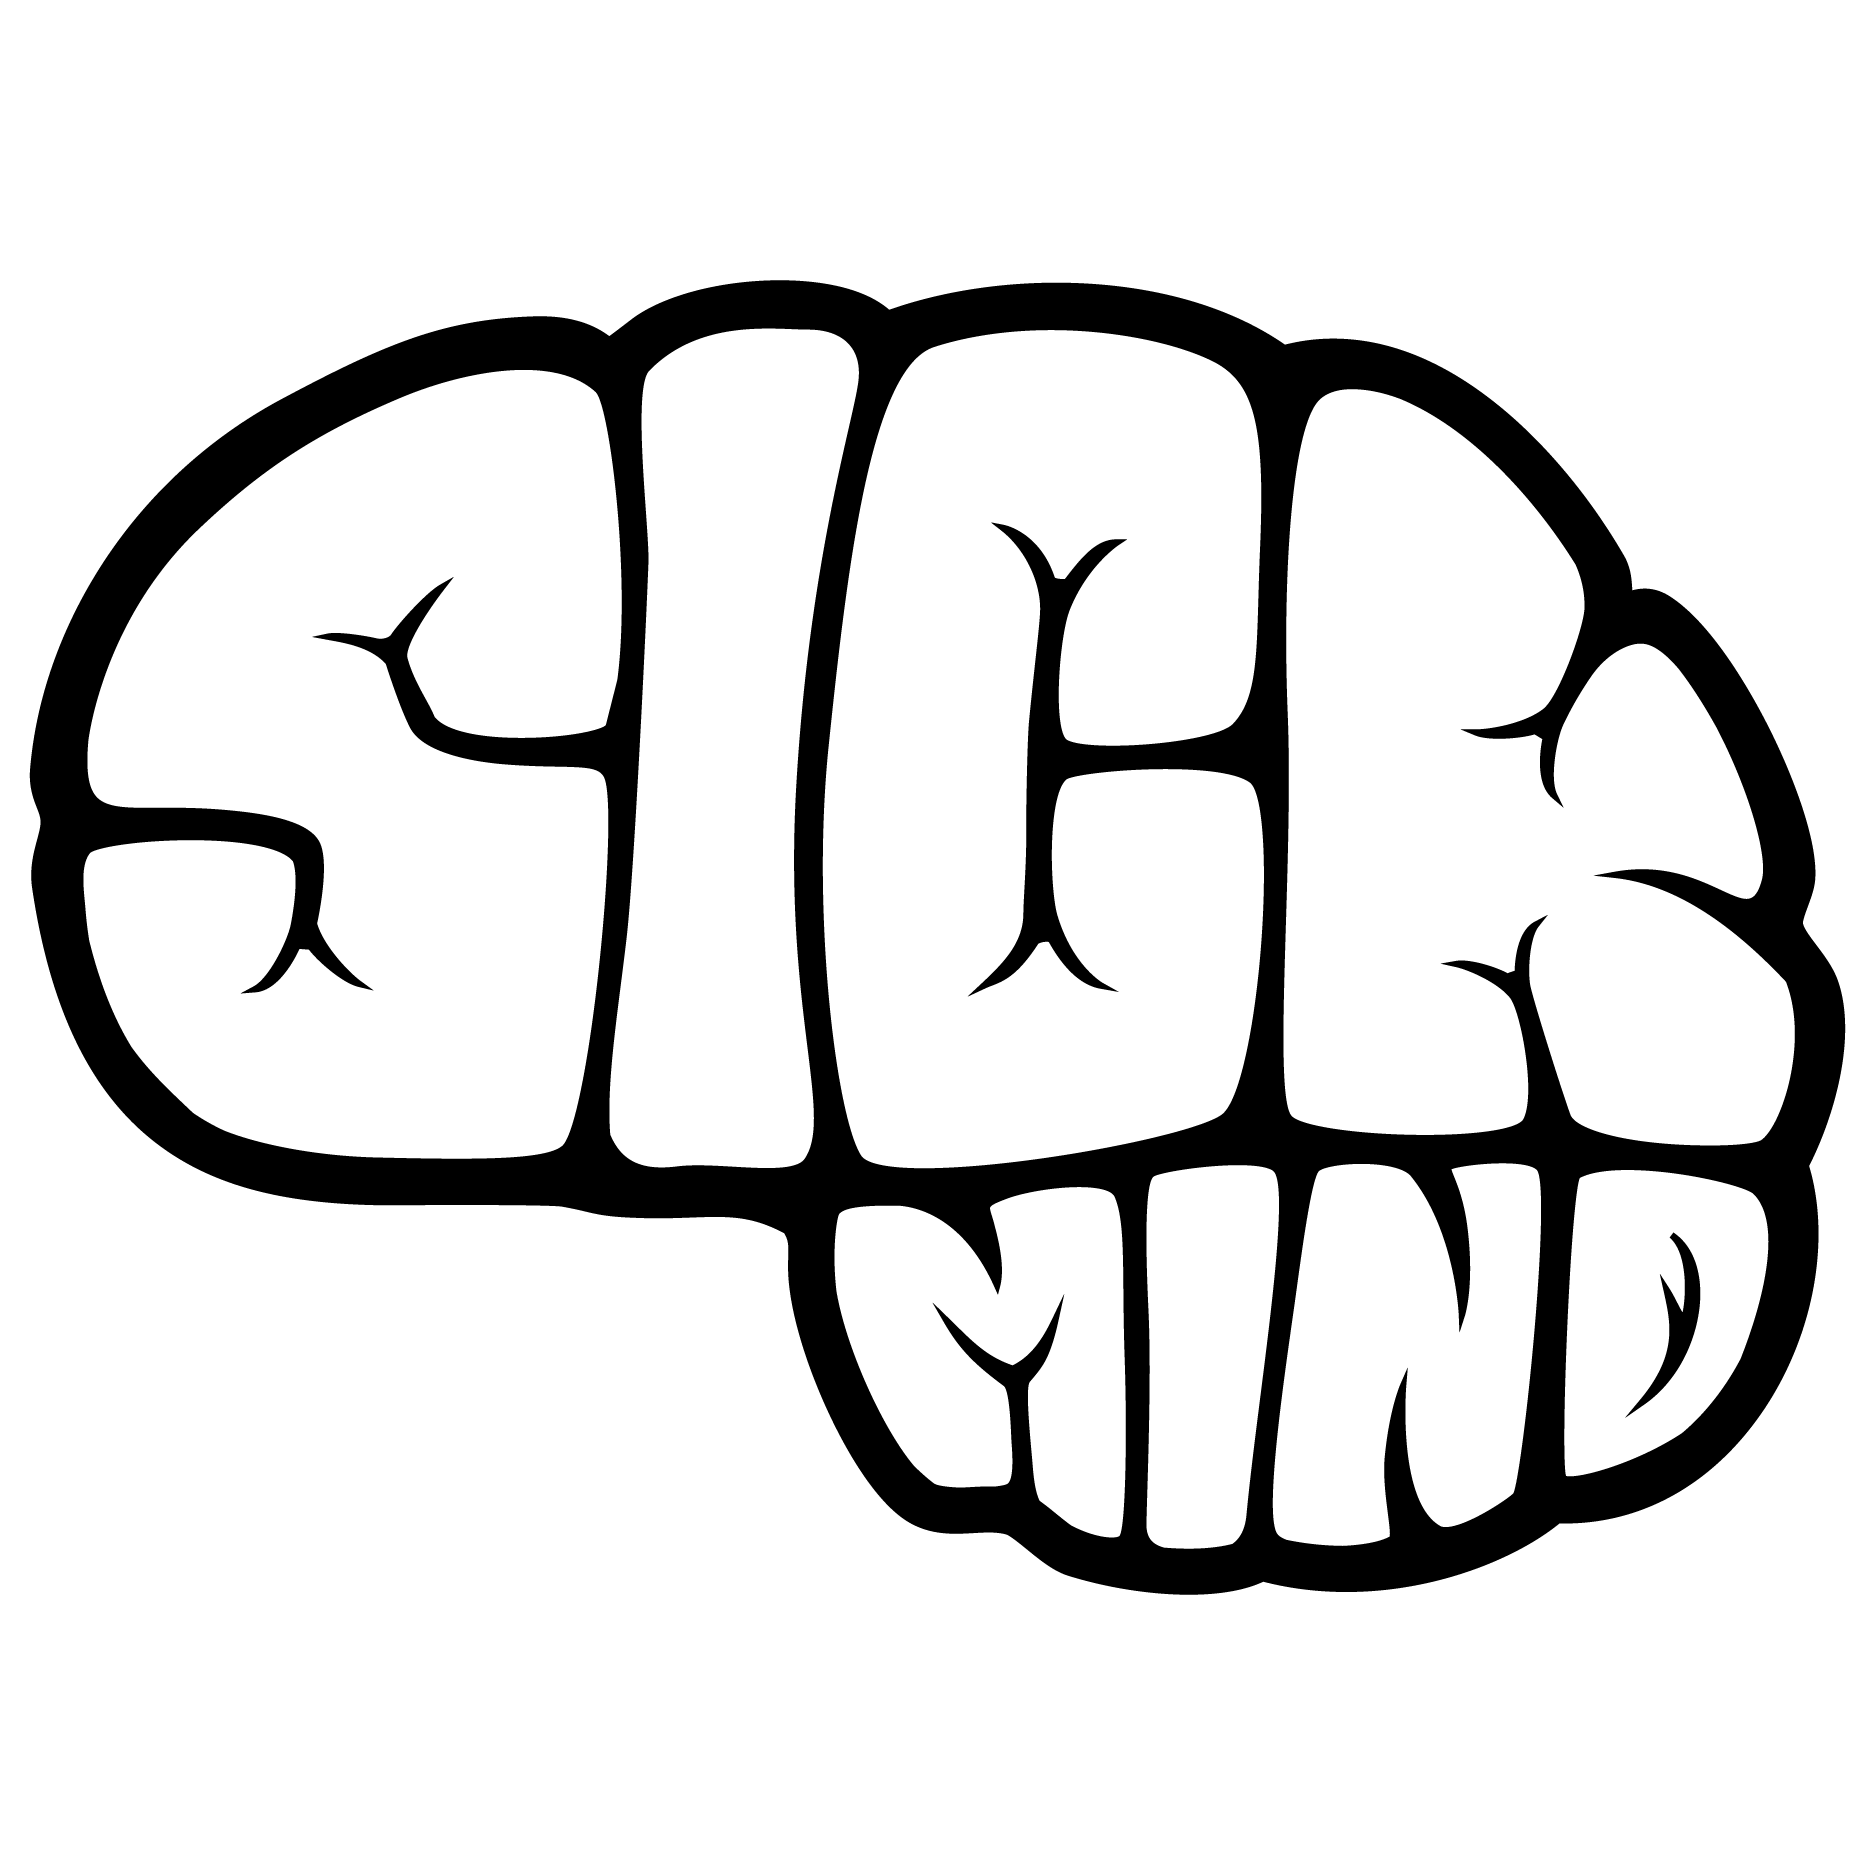 SickMind